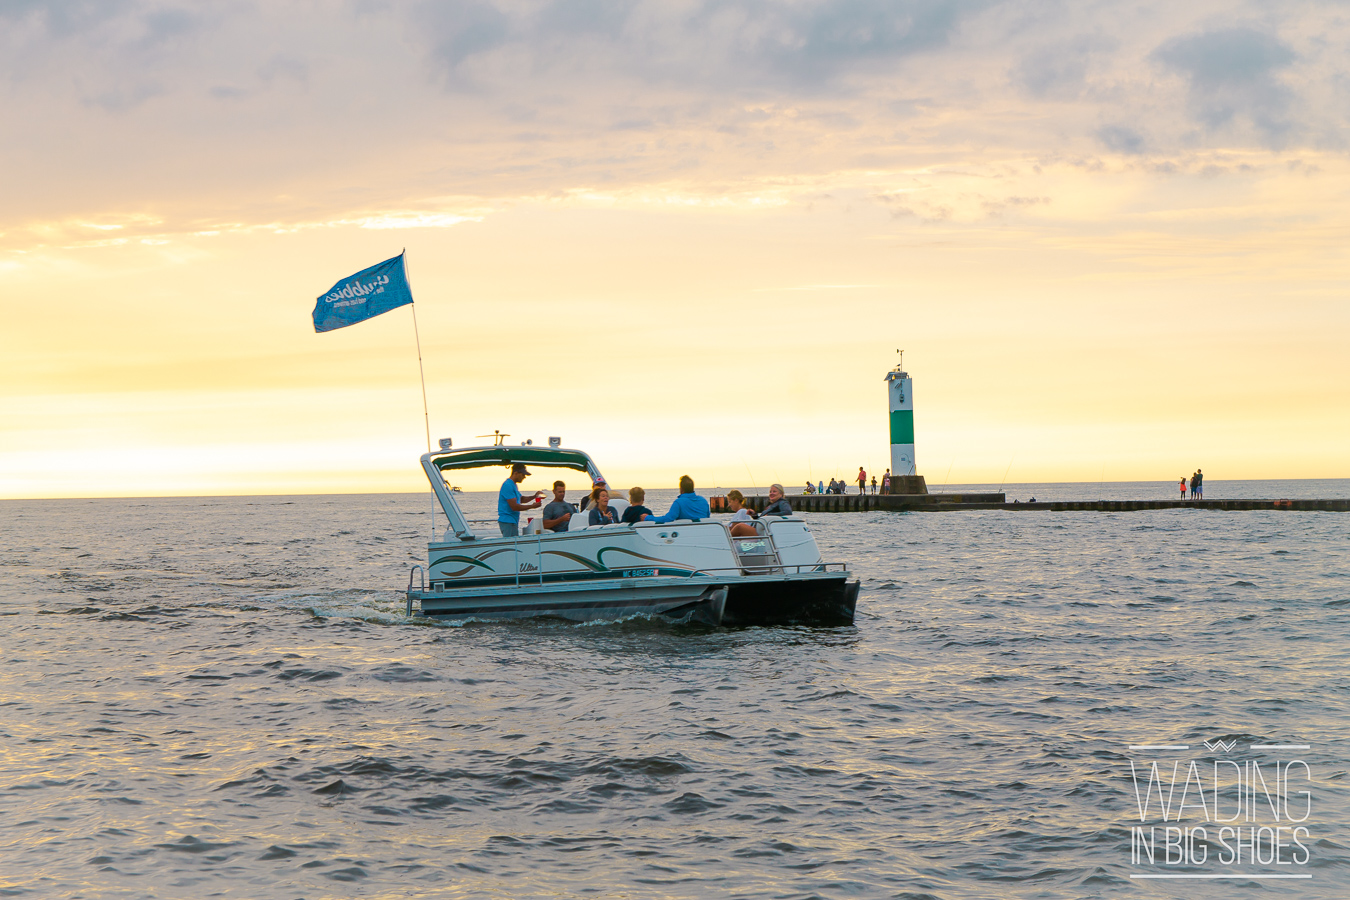 Wading in Big Shoes - Our 12-Hour Grand Haven Day Trip: Beaches, Eats, & Sunsets